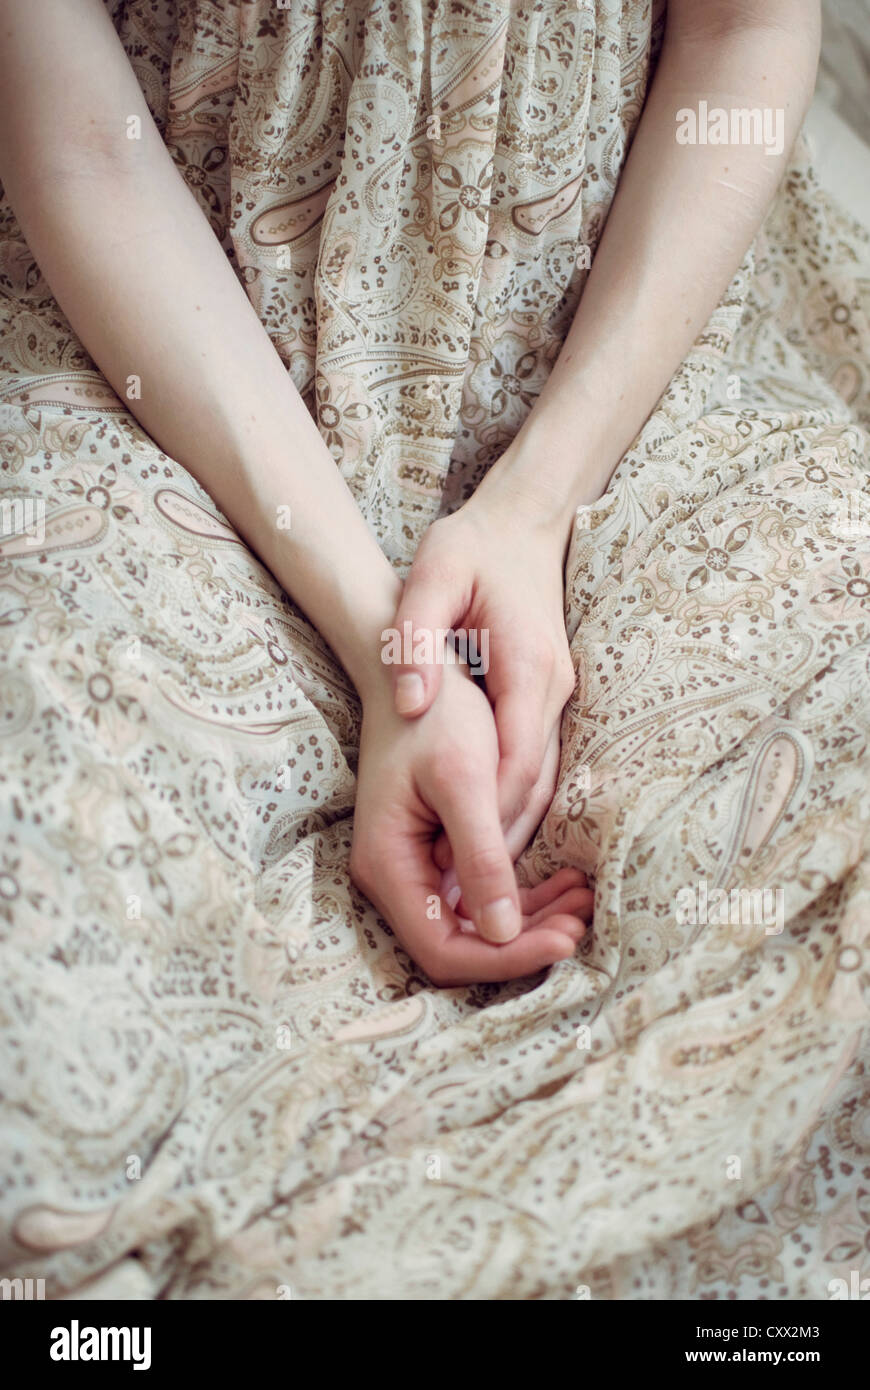 Close up photo of hands in the lap of a girl wearing a light summery dress - Stock Image